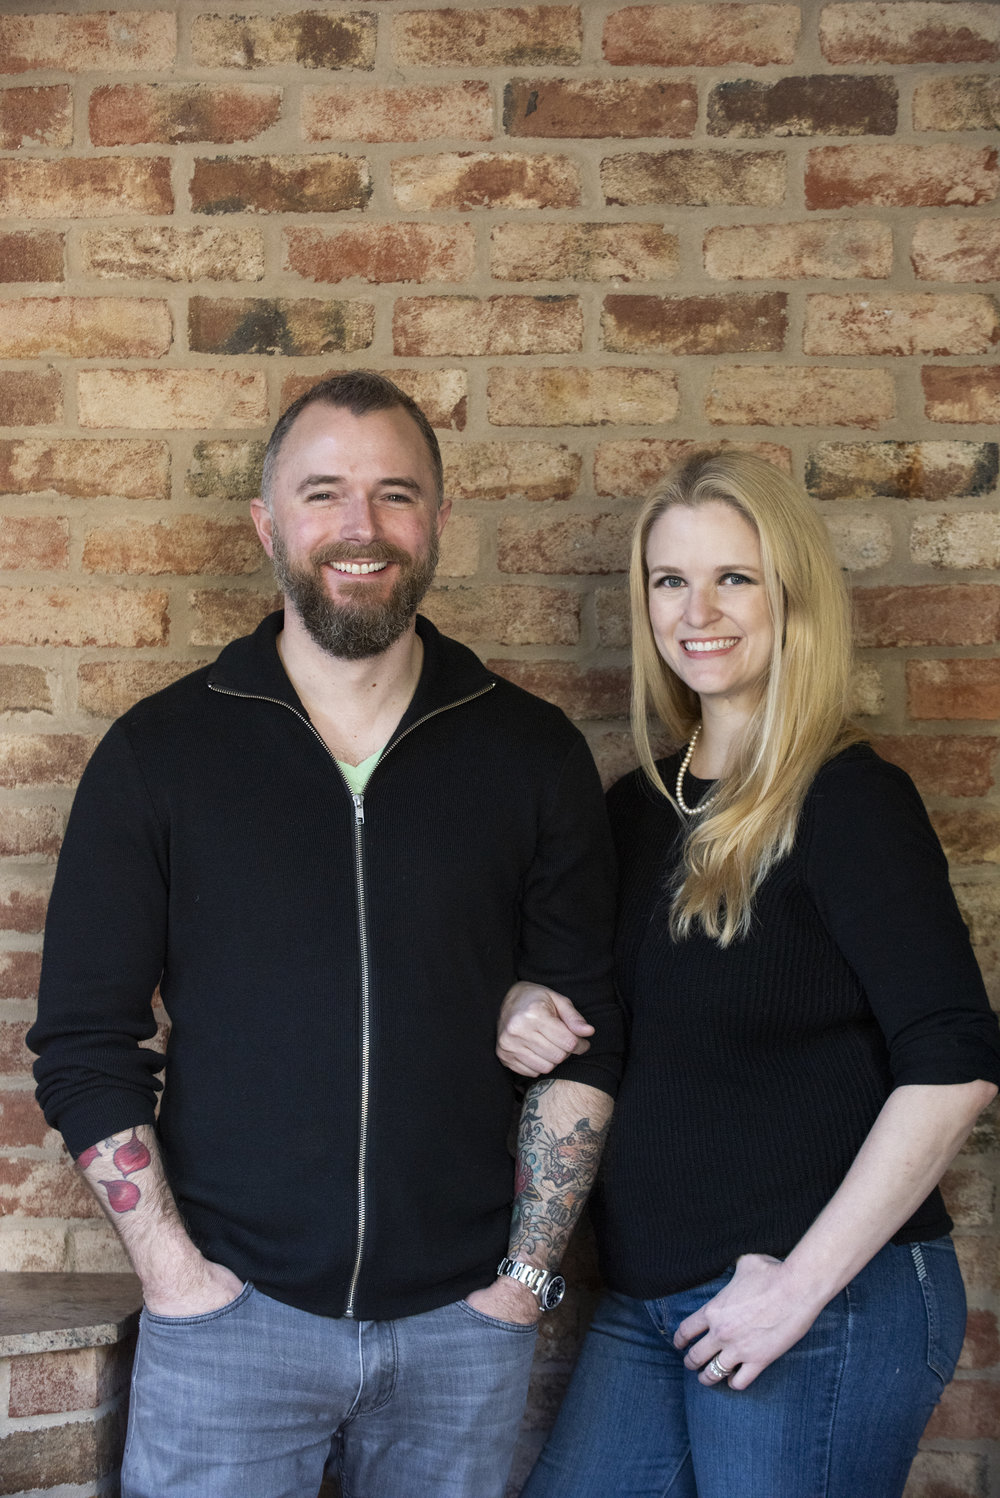 About Our Founder - HIP was founded by Houston native Kate Dearing Fowler. She grew up in the Copperfield area, went to Langham Creek High School (go Lobos!), and graduated from Tulane University in New Orleans with B.A.s in Communications and Spanish. She's now married to Stephen, an all around cool dude who also serves on HIP's board. They live in the Heights with their cat Jonas and goldendoodles, Lucy and Susan.